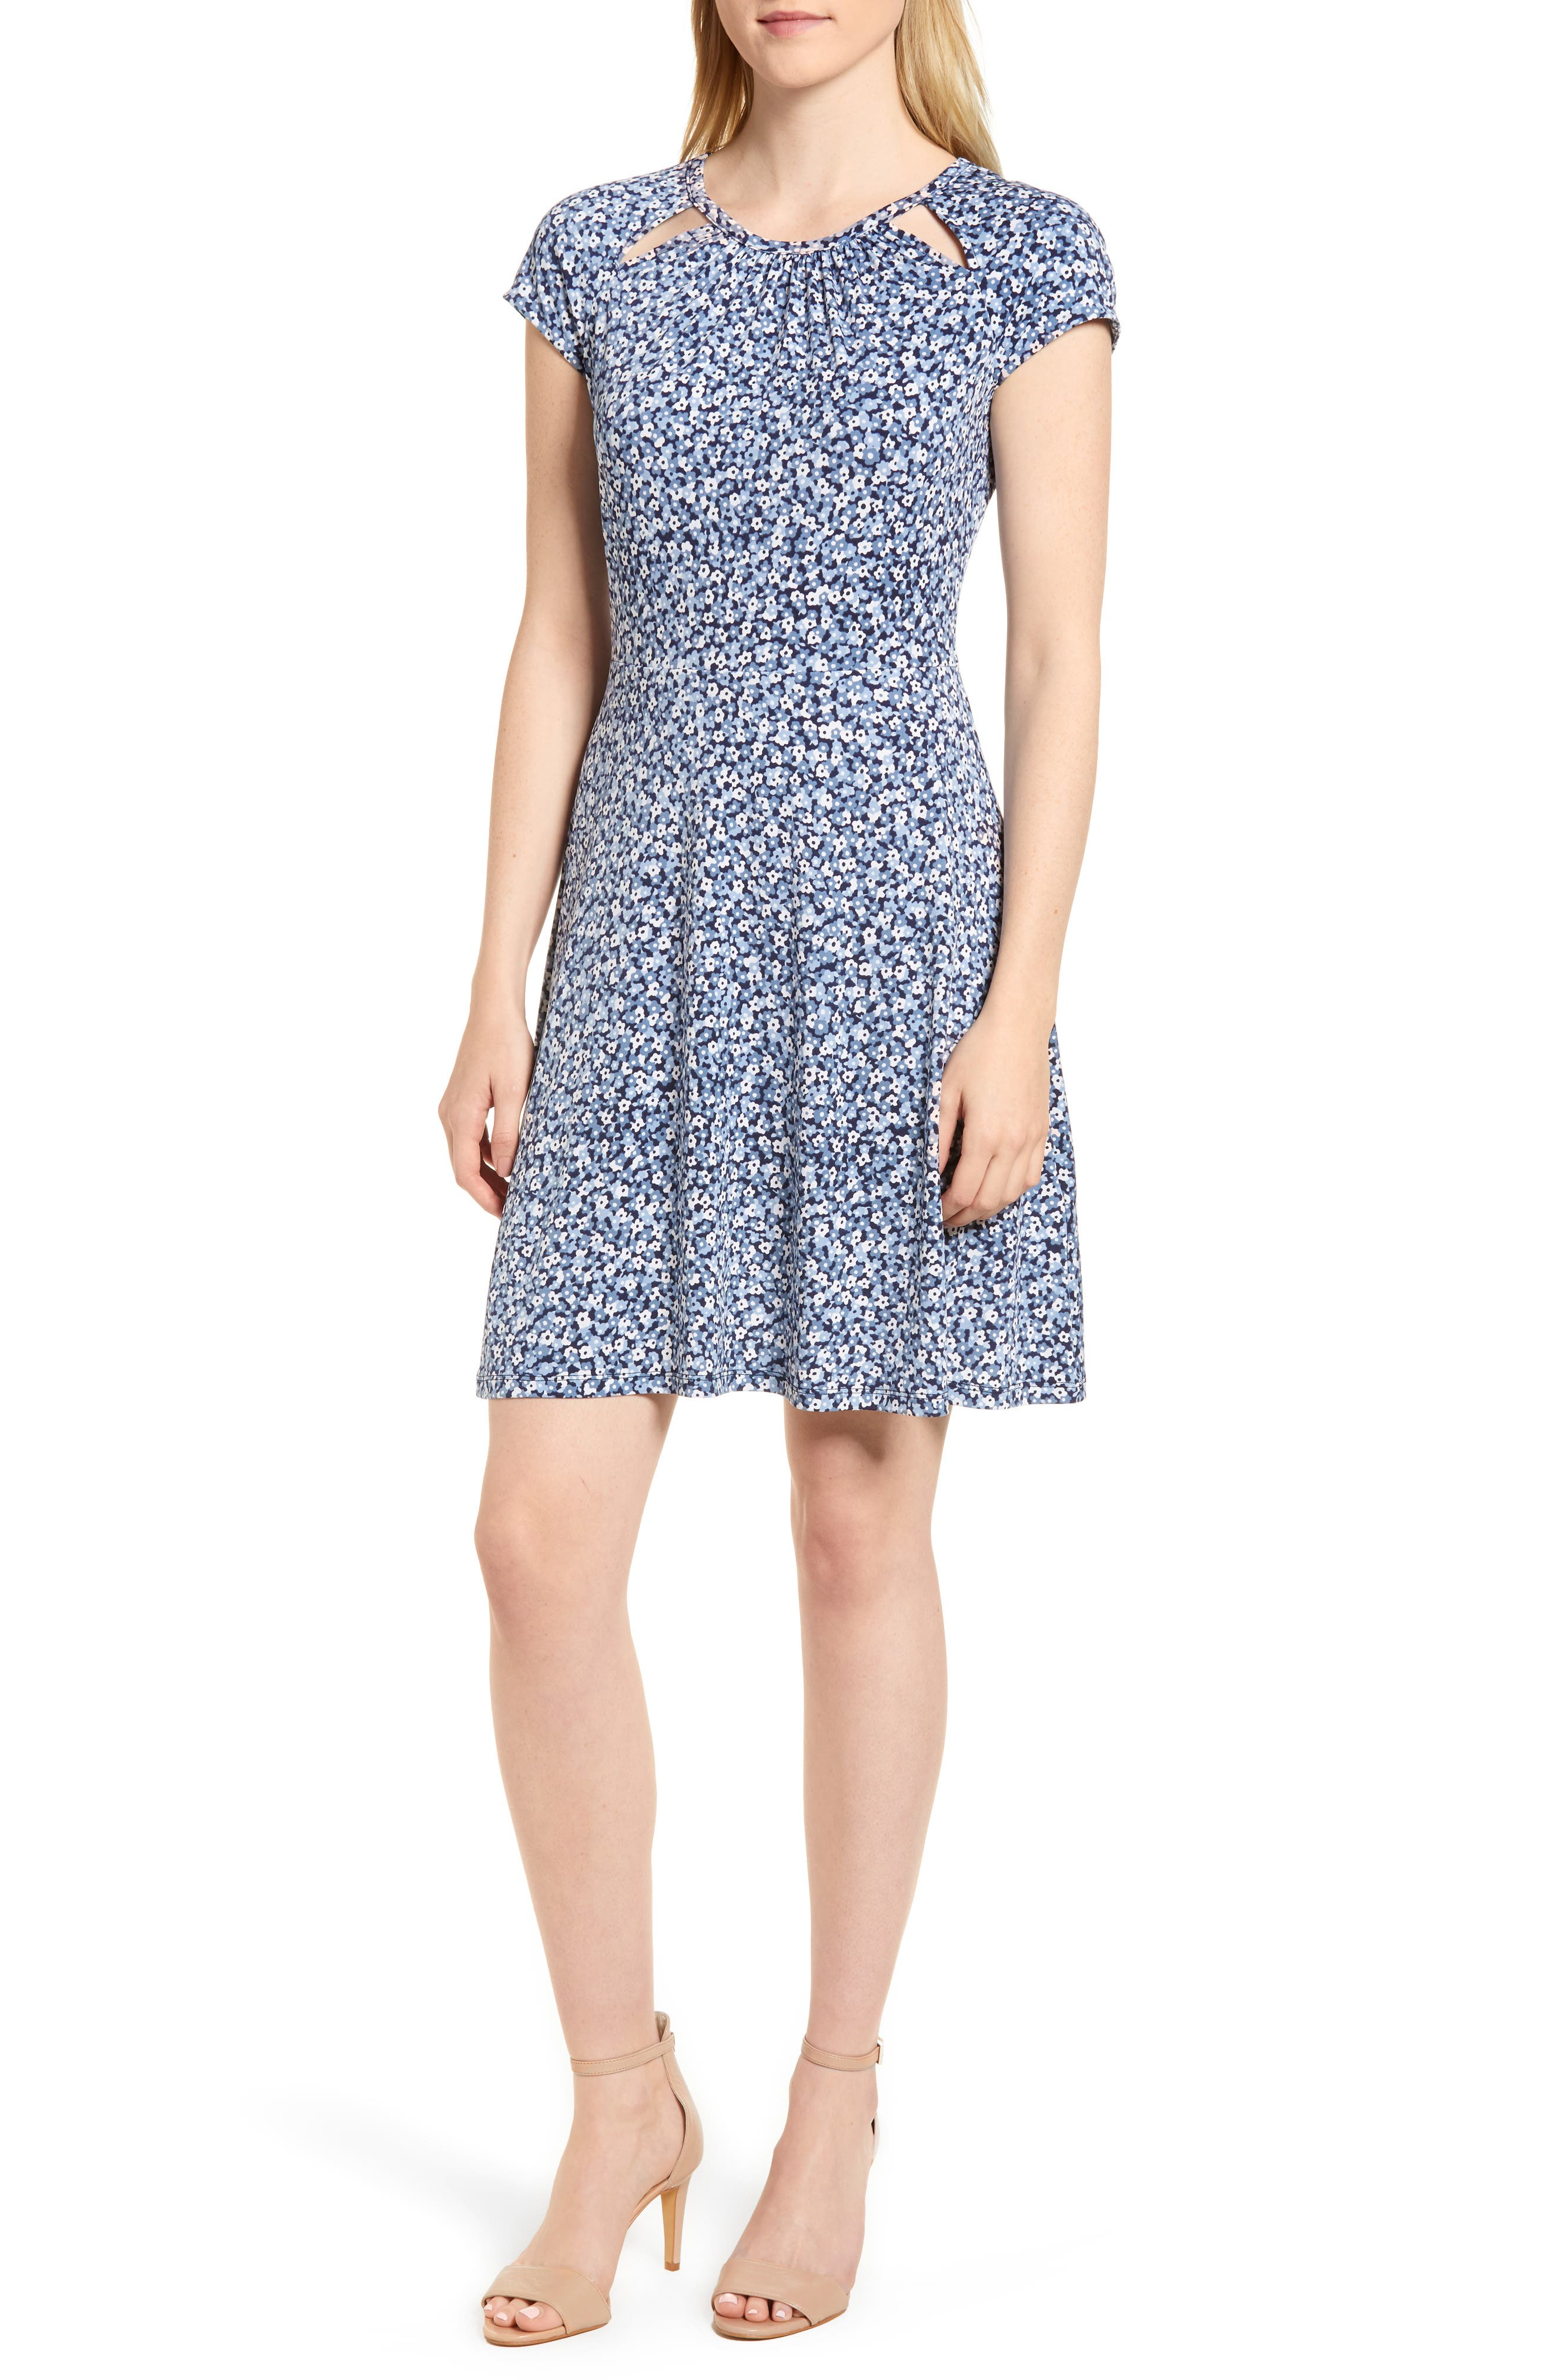 Collage Floral Double Keyhole Dress,                         Main,                         color, True Navy/ Light Chambray